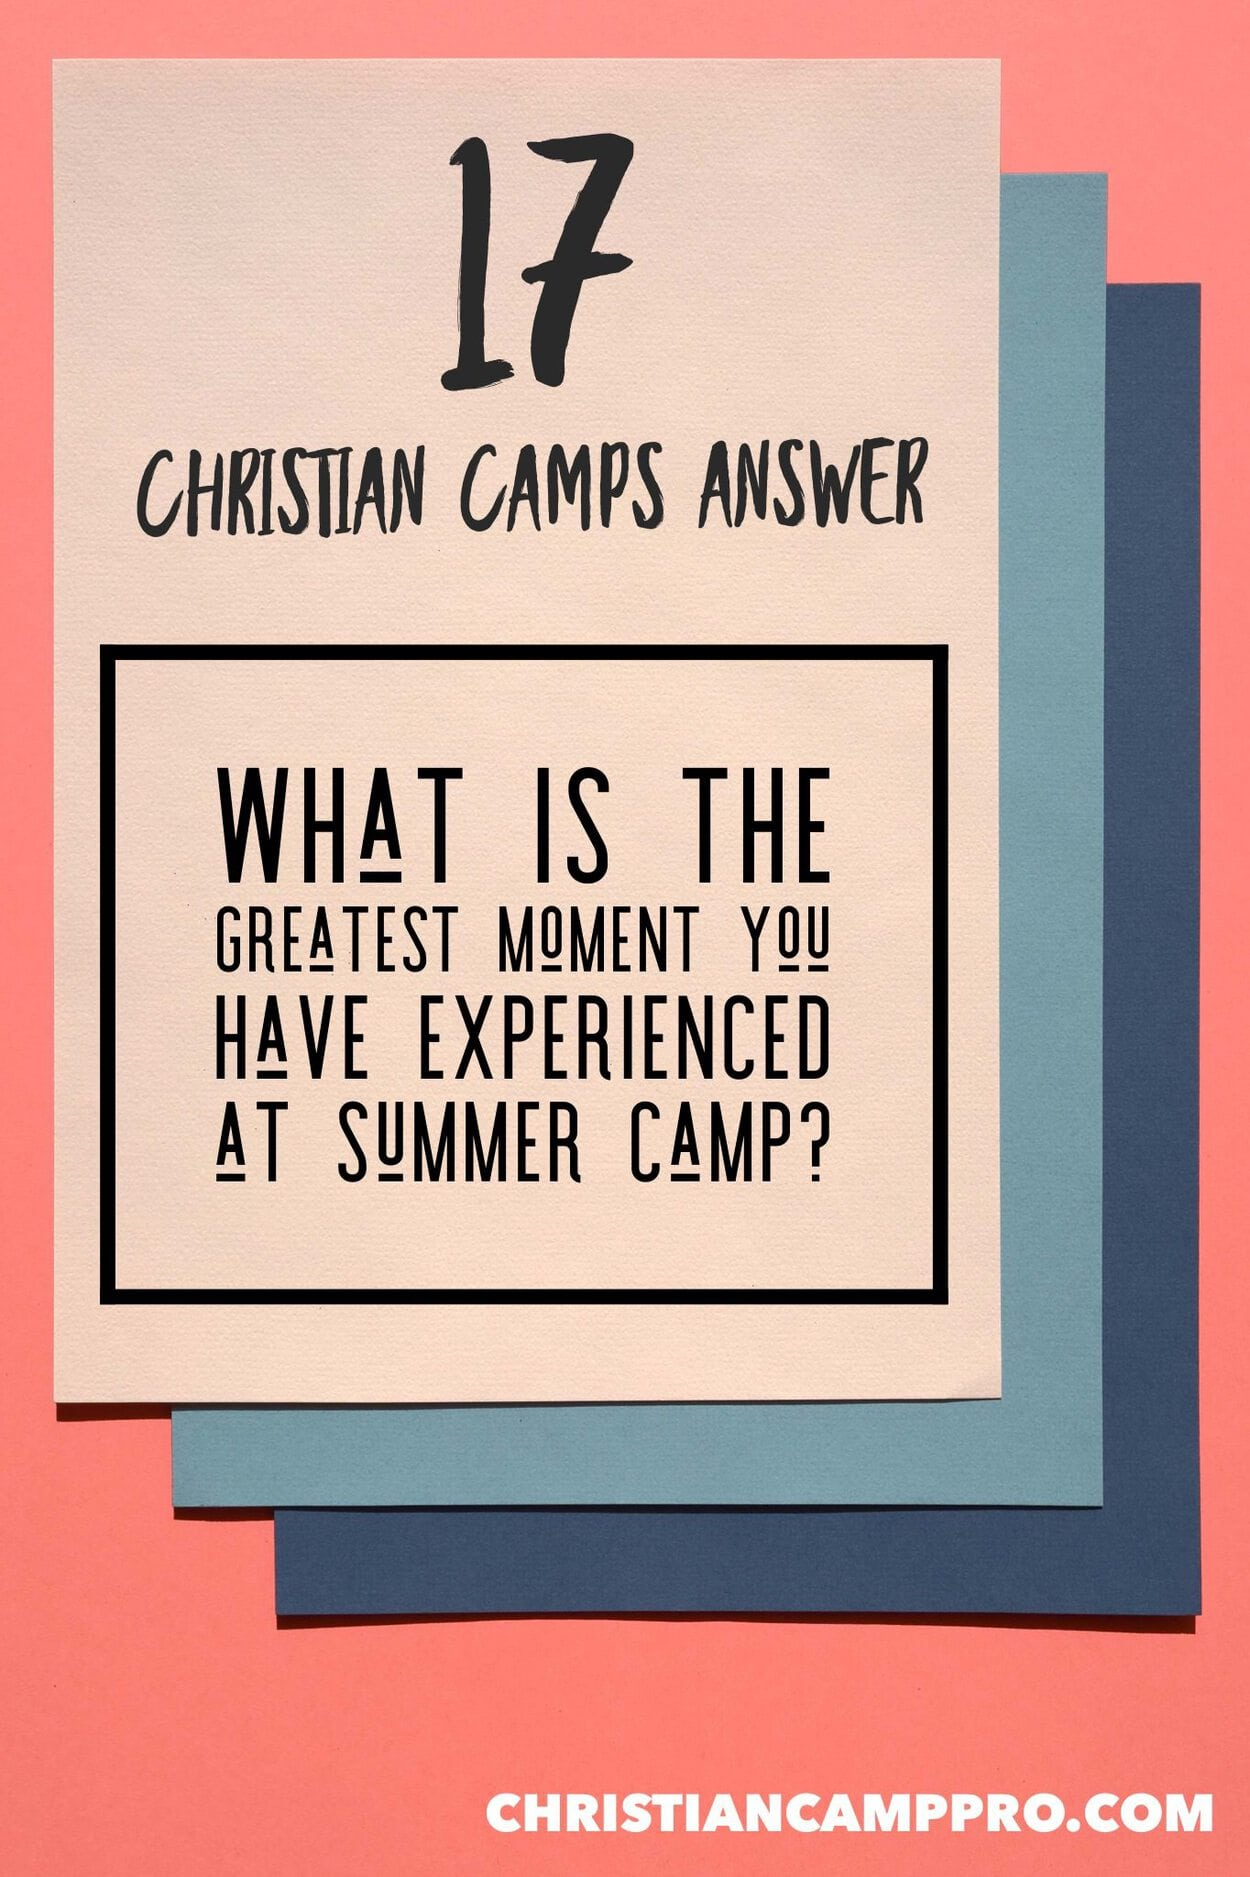 What is the greatest moment you have experienced at summer camp